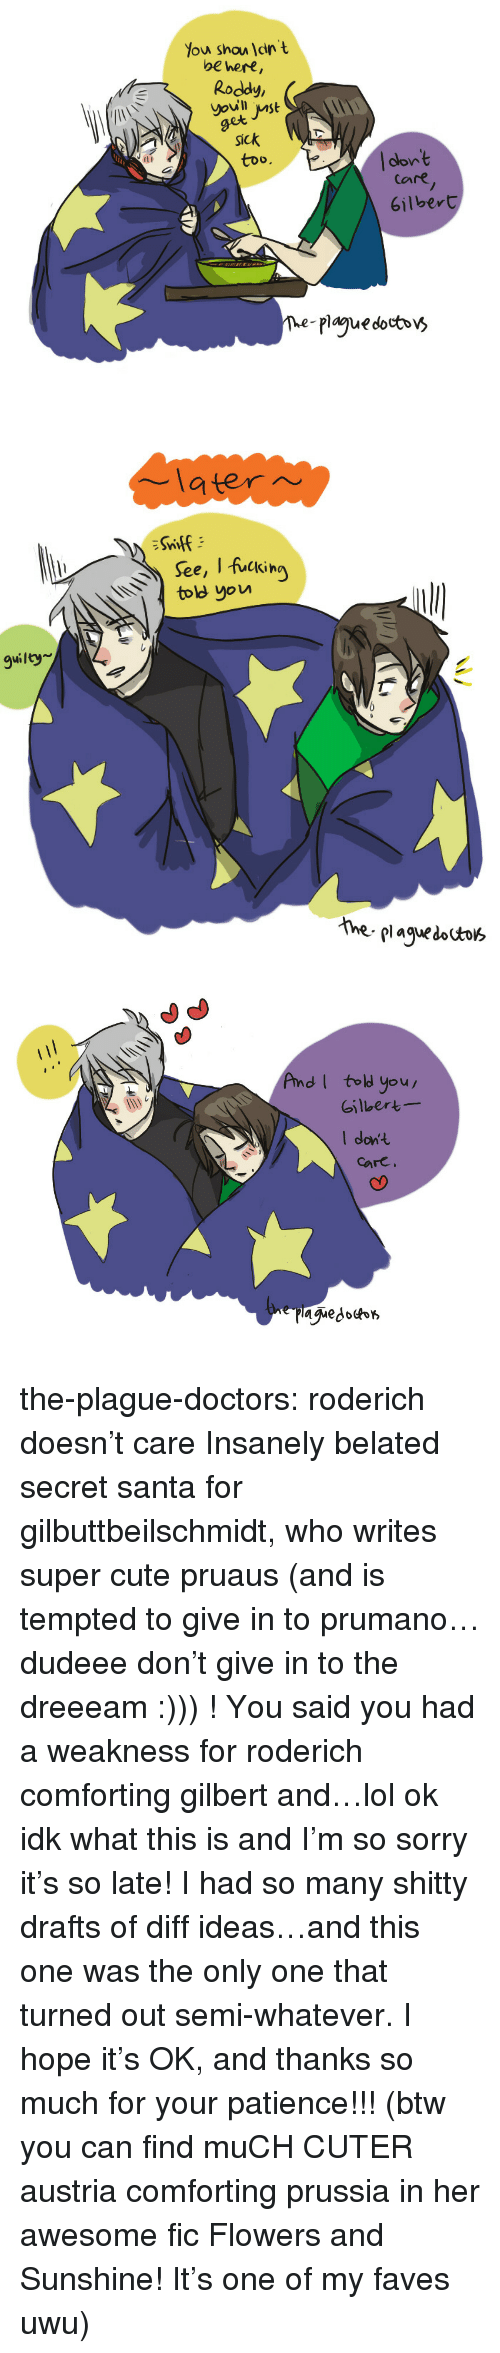 Cute, Fanfiction, and Lol: Y  ou shou dn  t  be hert,  Roddy  et  Sick  too.  clon't  Care  6ilbert  The-plague docbbv>   latern  See, I fuckin  ov  guilty  hhe plaguesa   AndI tol you  Gilbert  I dont  care the-plague-doctors:  roderich doesn't care  Insanely belated secret santa for gilbuttbeilschmidt, who writes super cute pruaus (and is tempted to give in to prumano…dudeee don't give in to the dreeeam :))) ! You said you had a weakness for roderich comforting gilbert and…lol ok idk what this is and I'm so sorry it's so late! I had so many shitty drafts of diff ideas…and this one was the only one that turned out semi-whatever. I hope it's OK, and thanks so much for your patience!!! (btw you can find muCH CUTER austria comforting prussia in her awesome fic Flowers and Sunshine! It's one of my faves uwu)